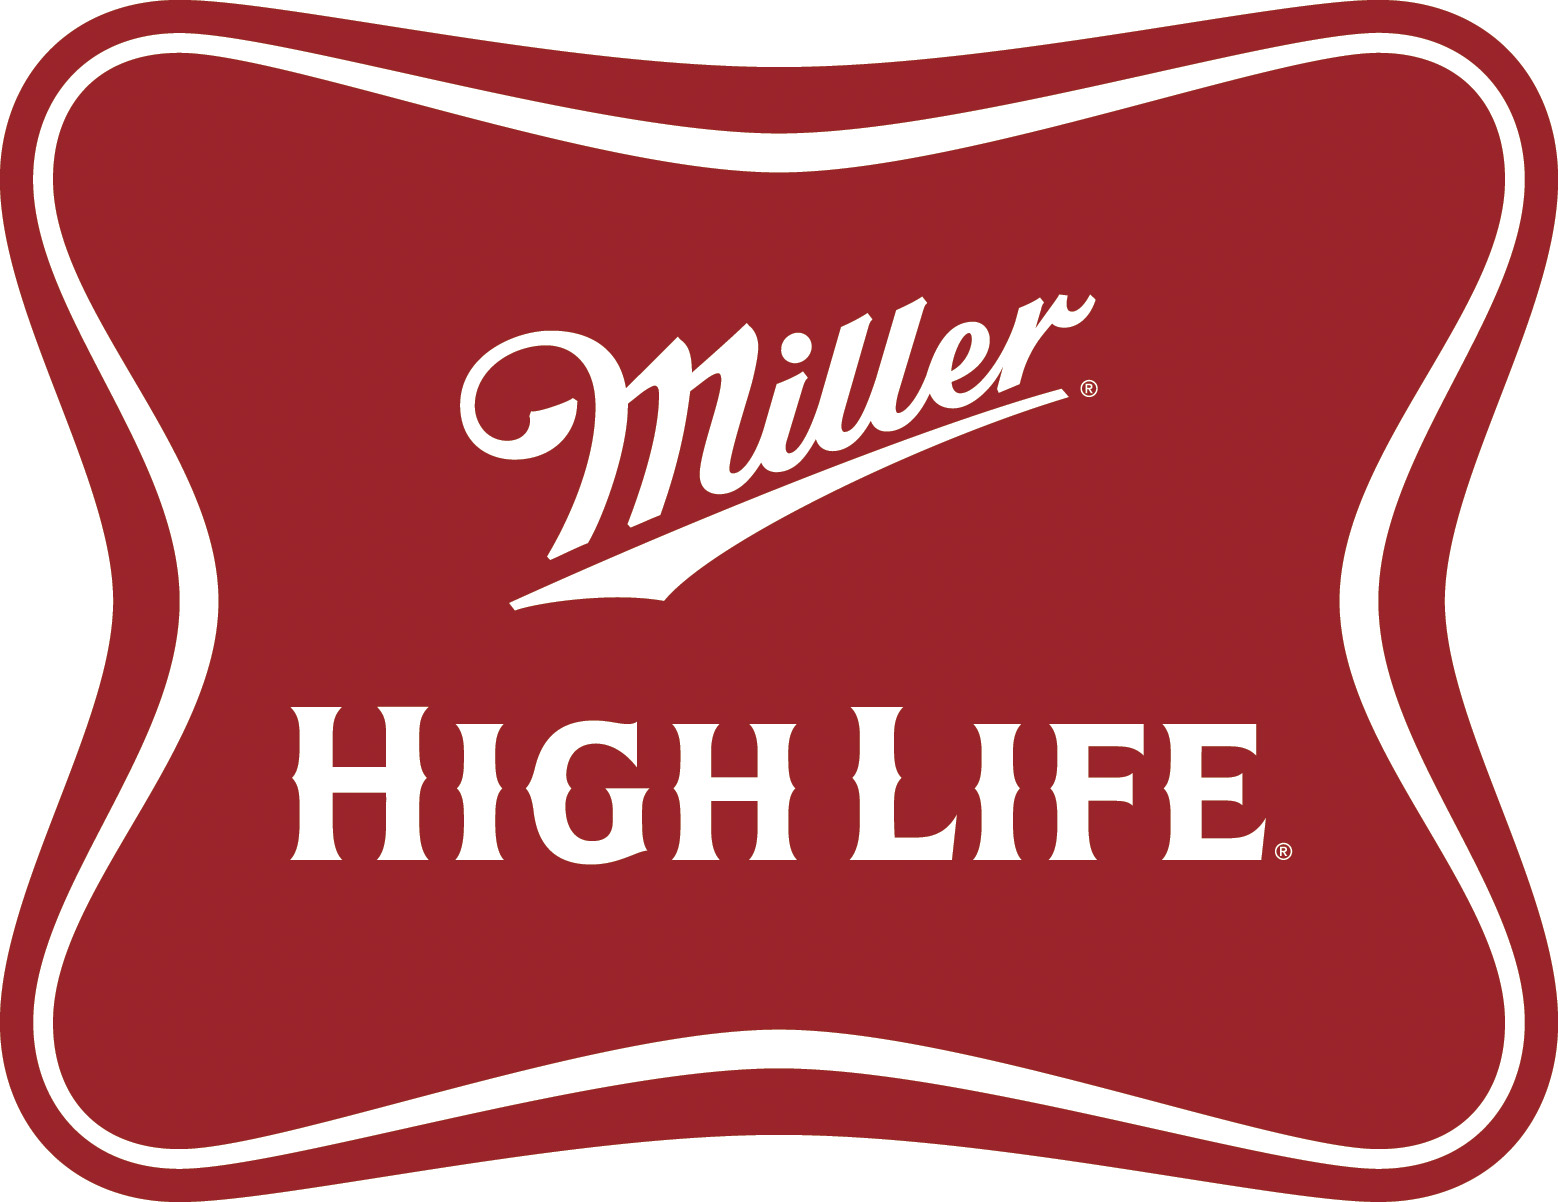 Miller High Life   Available in Wayne, Washtenaw, Livingston, Monroe, Lenawee, Jackson, and Hillsdale Counties.